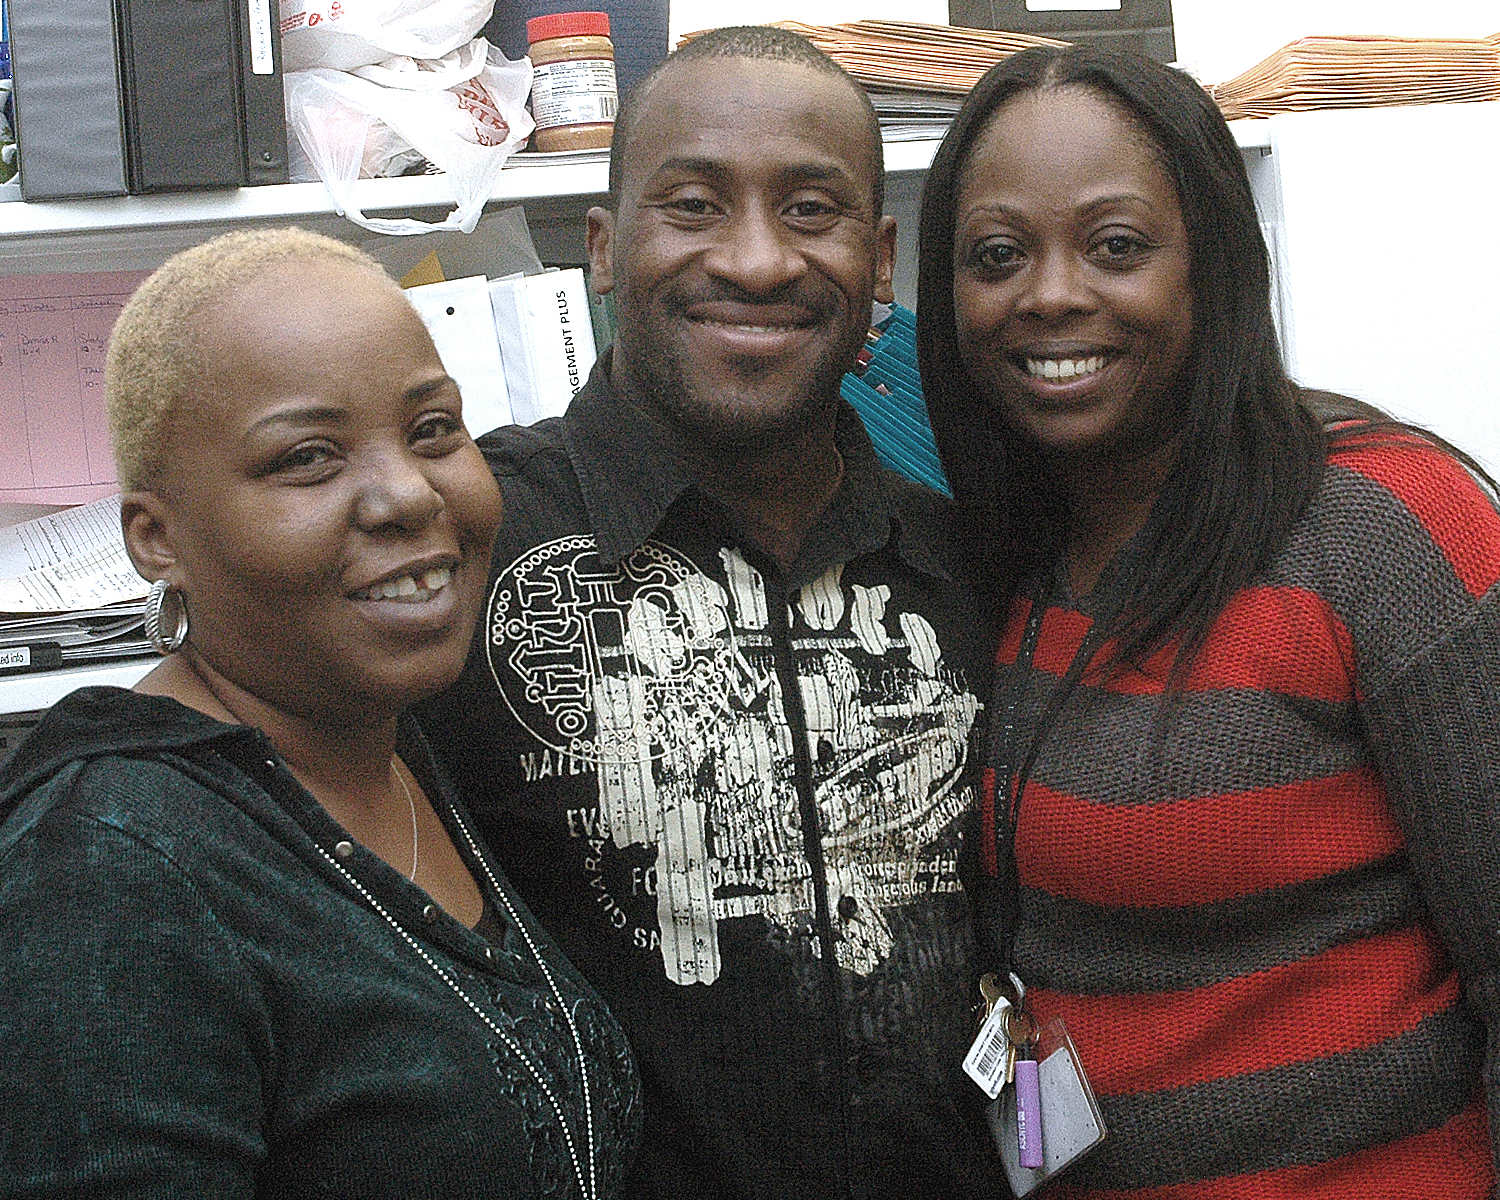 Yvonne Gooden, Derrick Flowers and Tamaqua Pierce